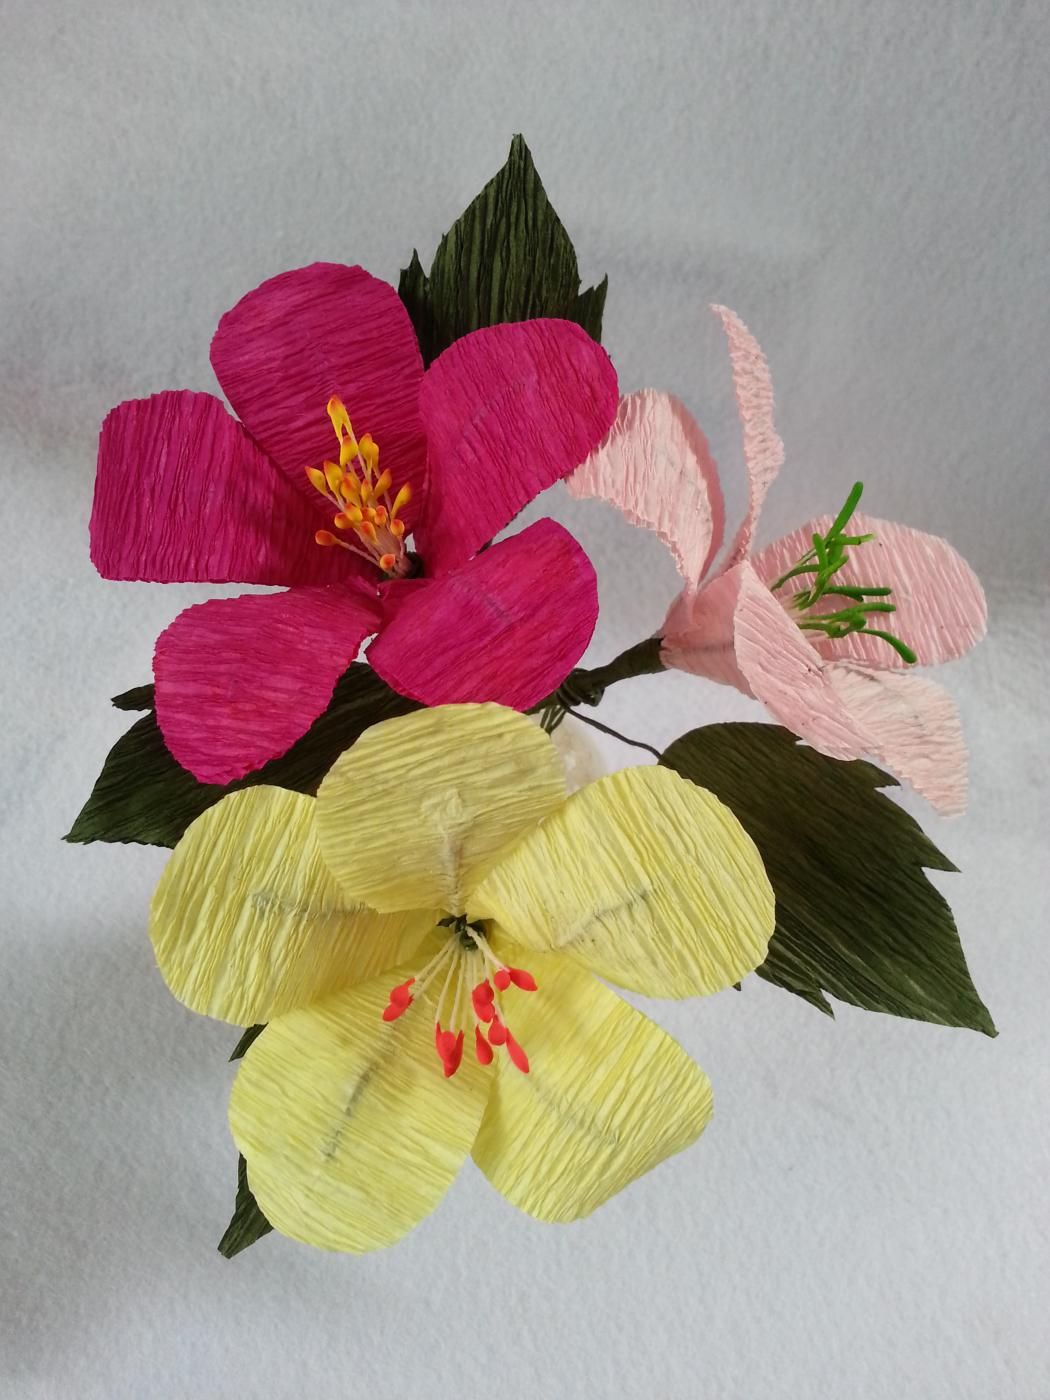 How to make crepe hibiscus flowers crepe paper streamers paper learn how to make this easy hibiscus flower using crepe paper streamers you can get these streamers at the dollar stores or craft stores izmirmasajfo